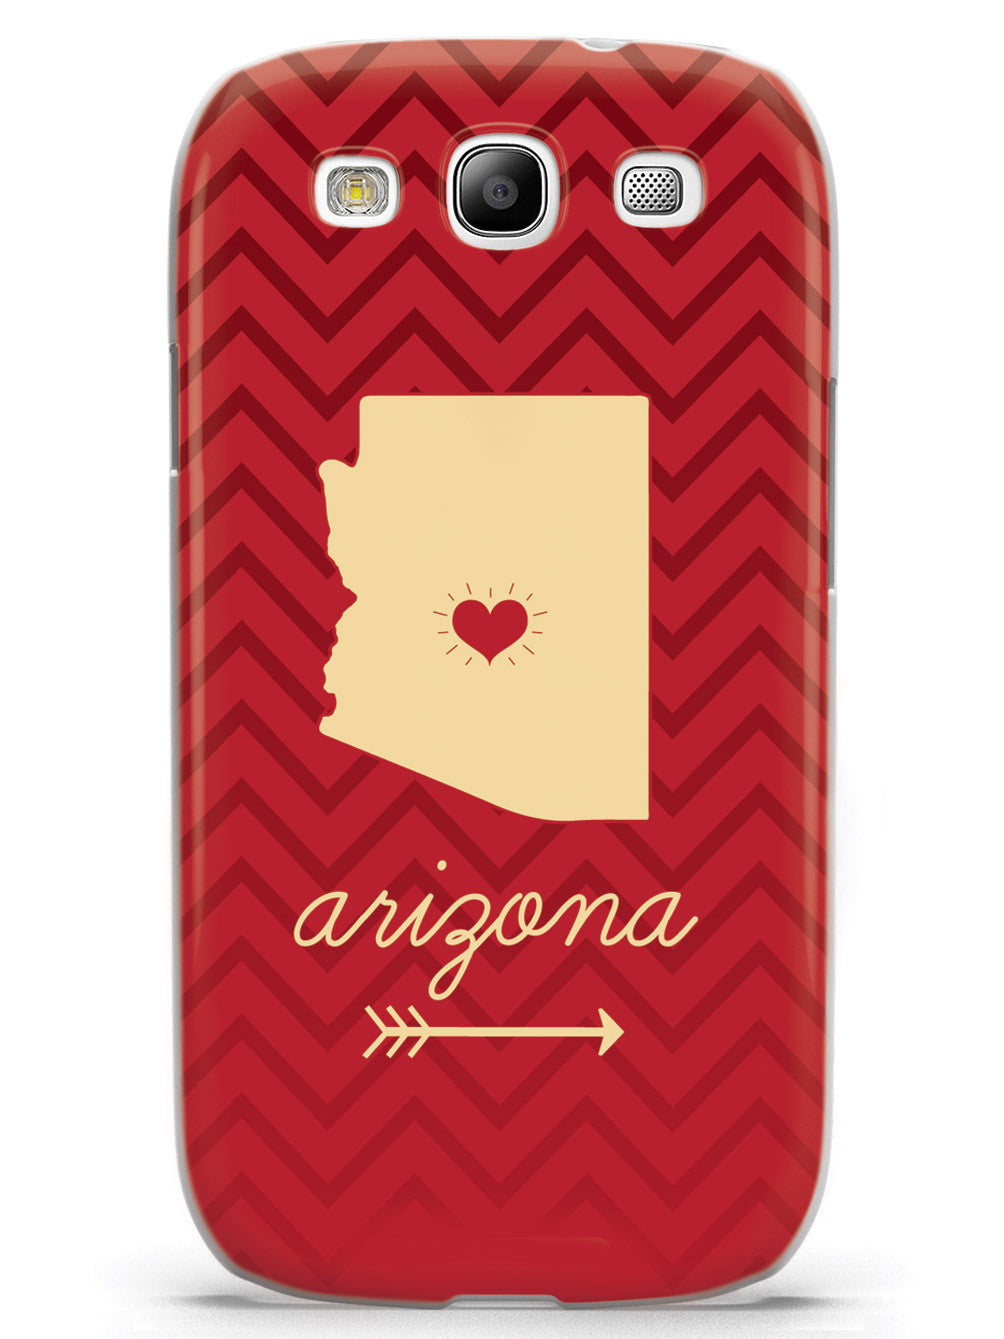 Arizona Chevron Pattern State Case